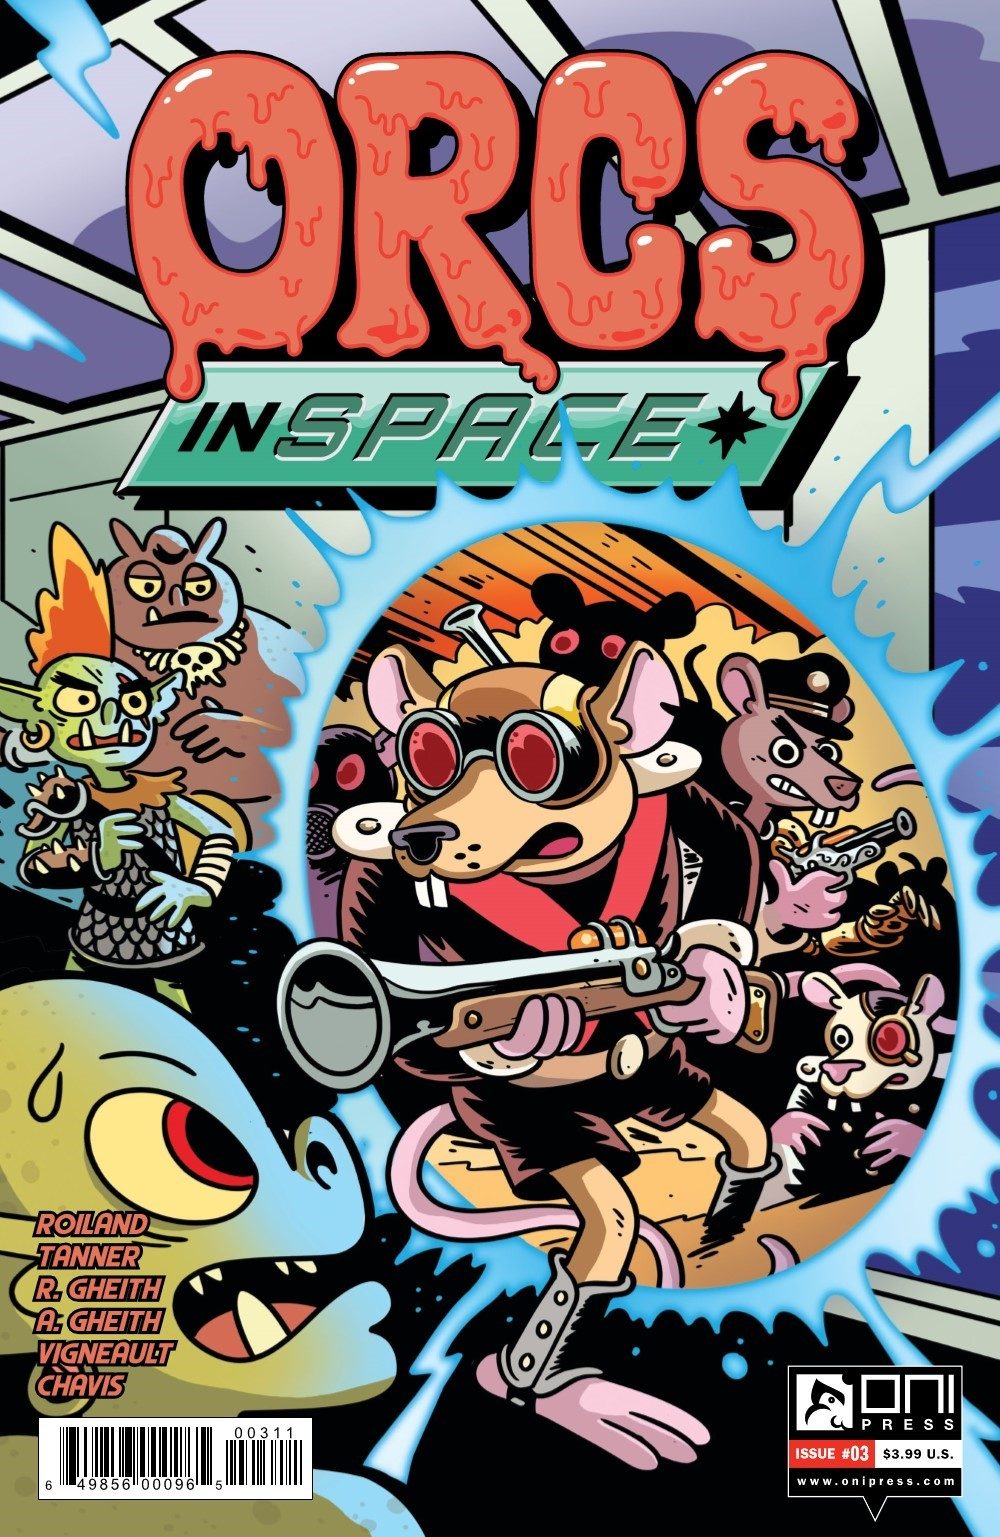 ORCSINSPACE-3-REFERENCE-01 ComicList Previews: ORCS IN SPACE #3